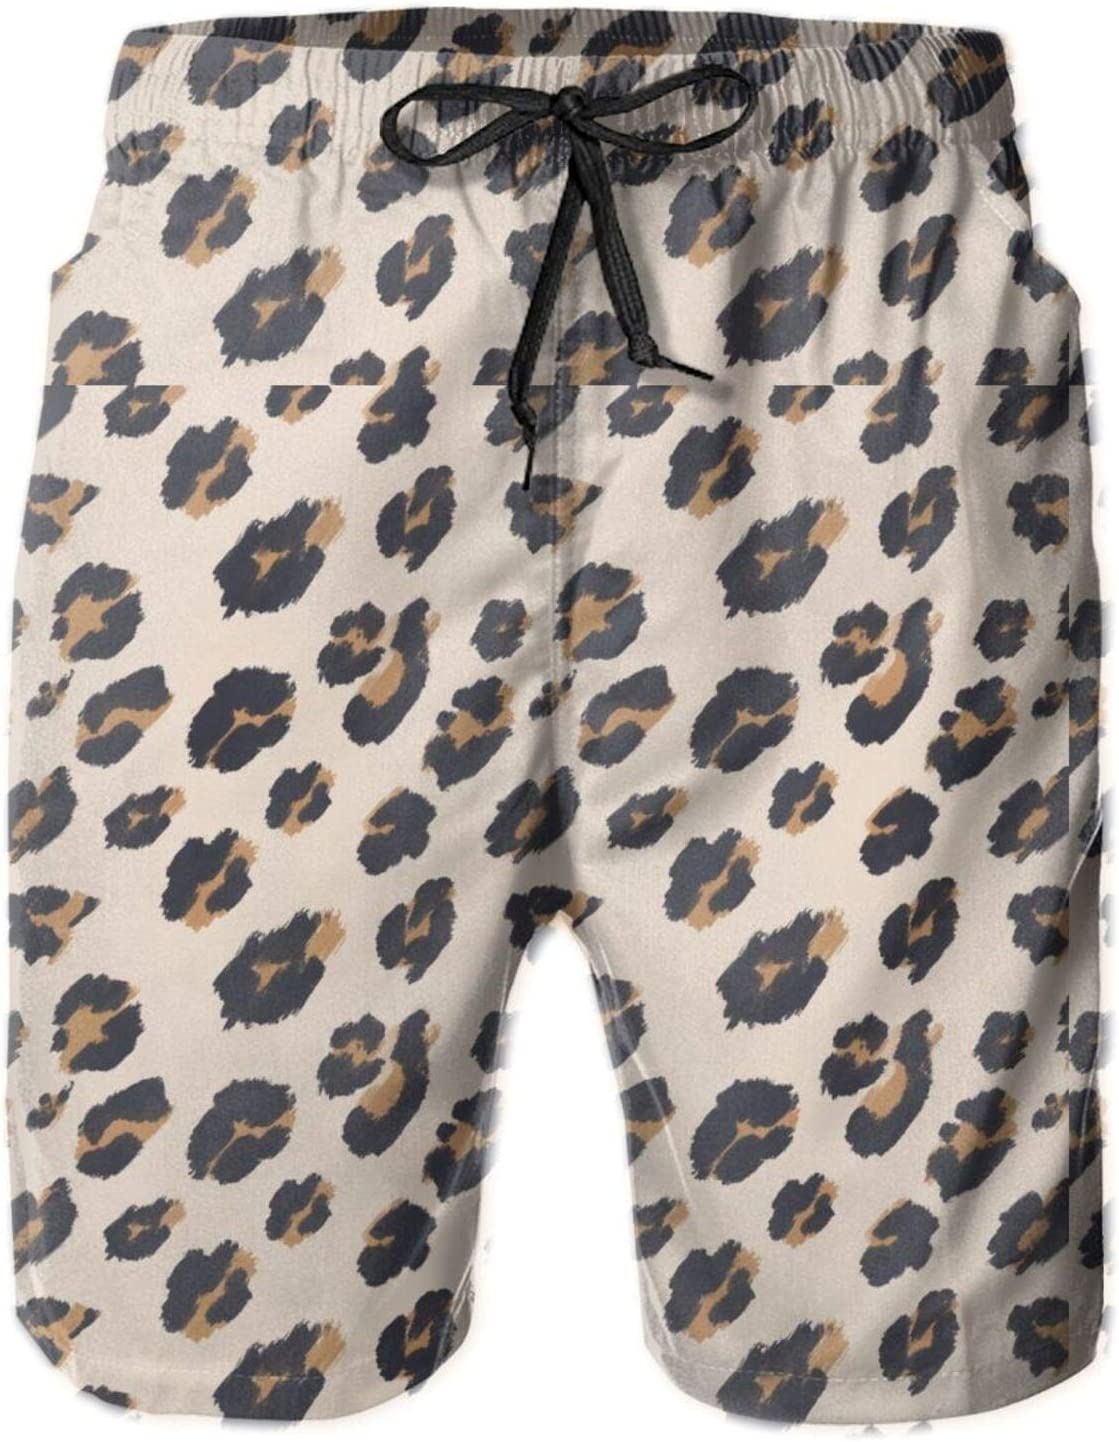 pengyong Leopard Cheetah Spotted Texture Summer Underwear Board Shorts Bathing Suits Holiday Swim Trunks Quick Dry